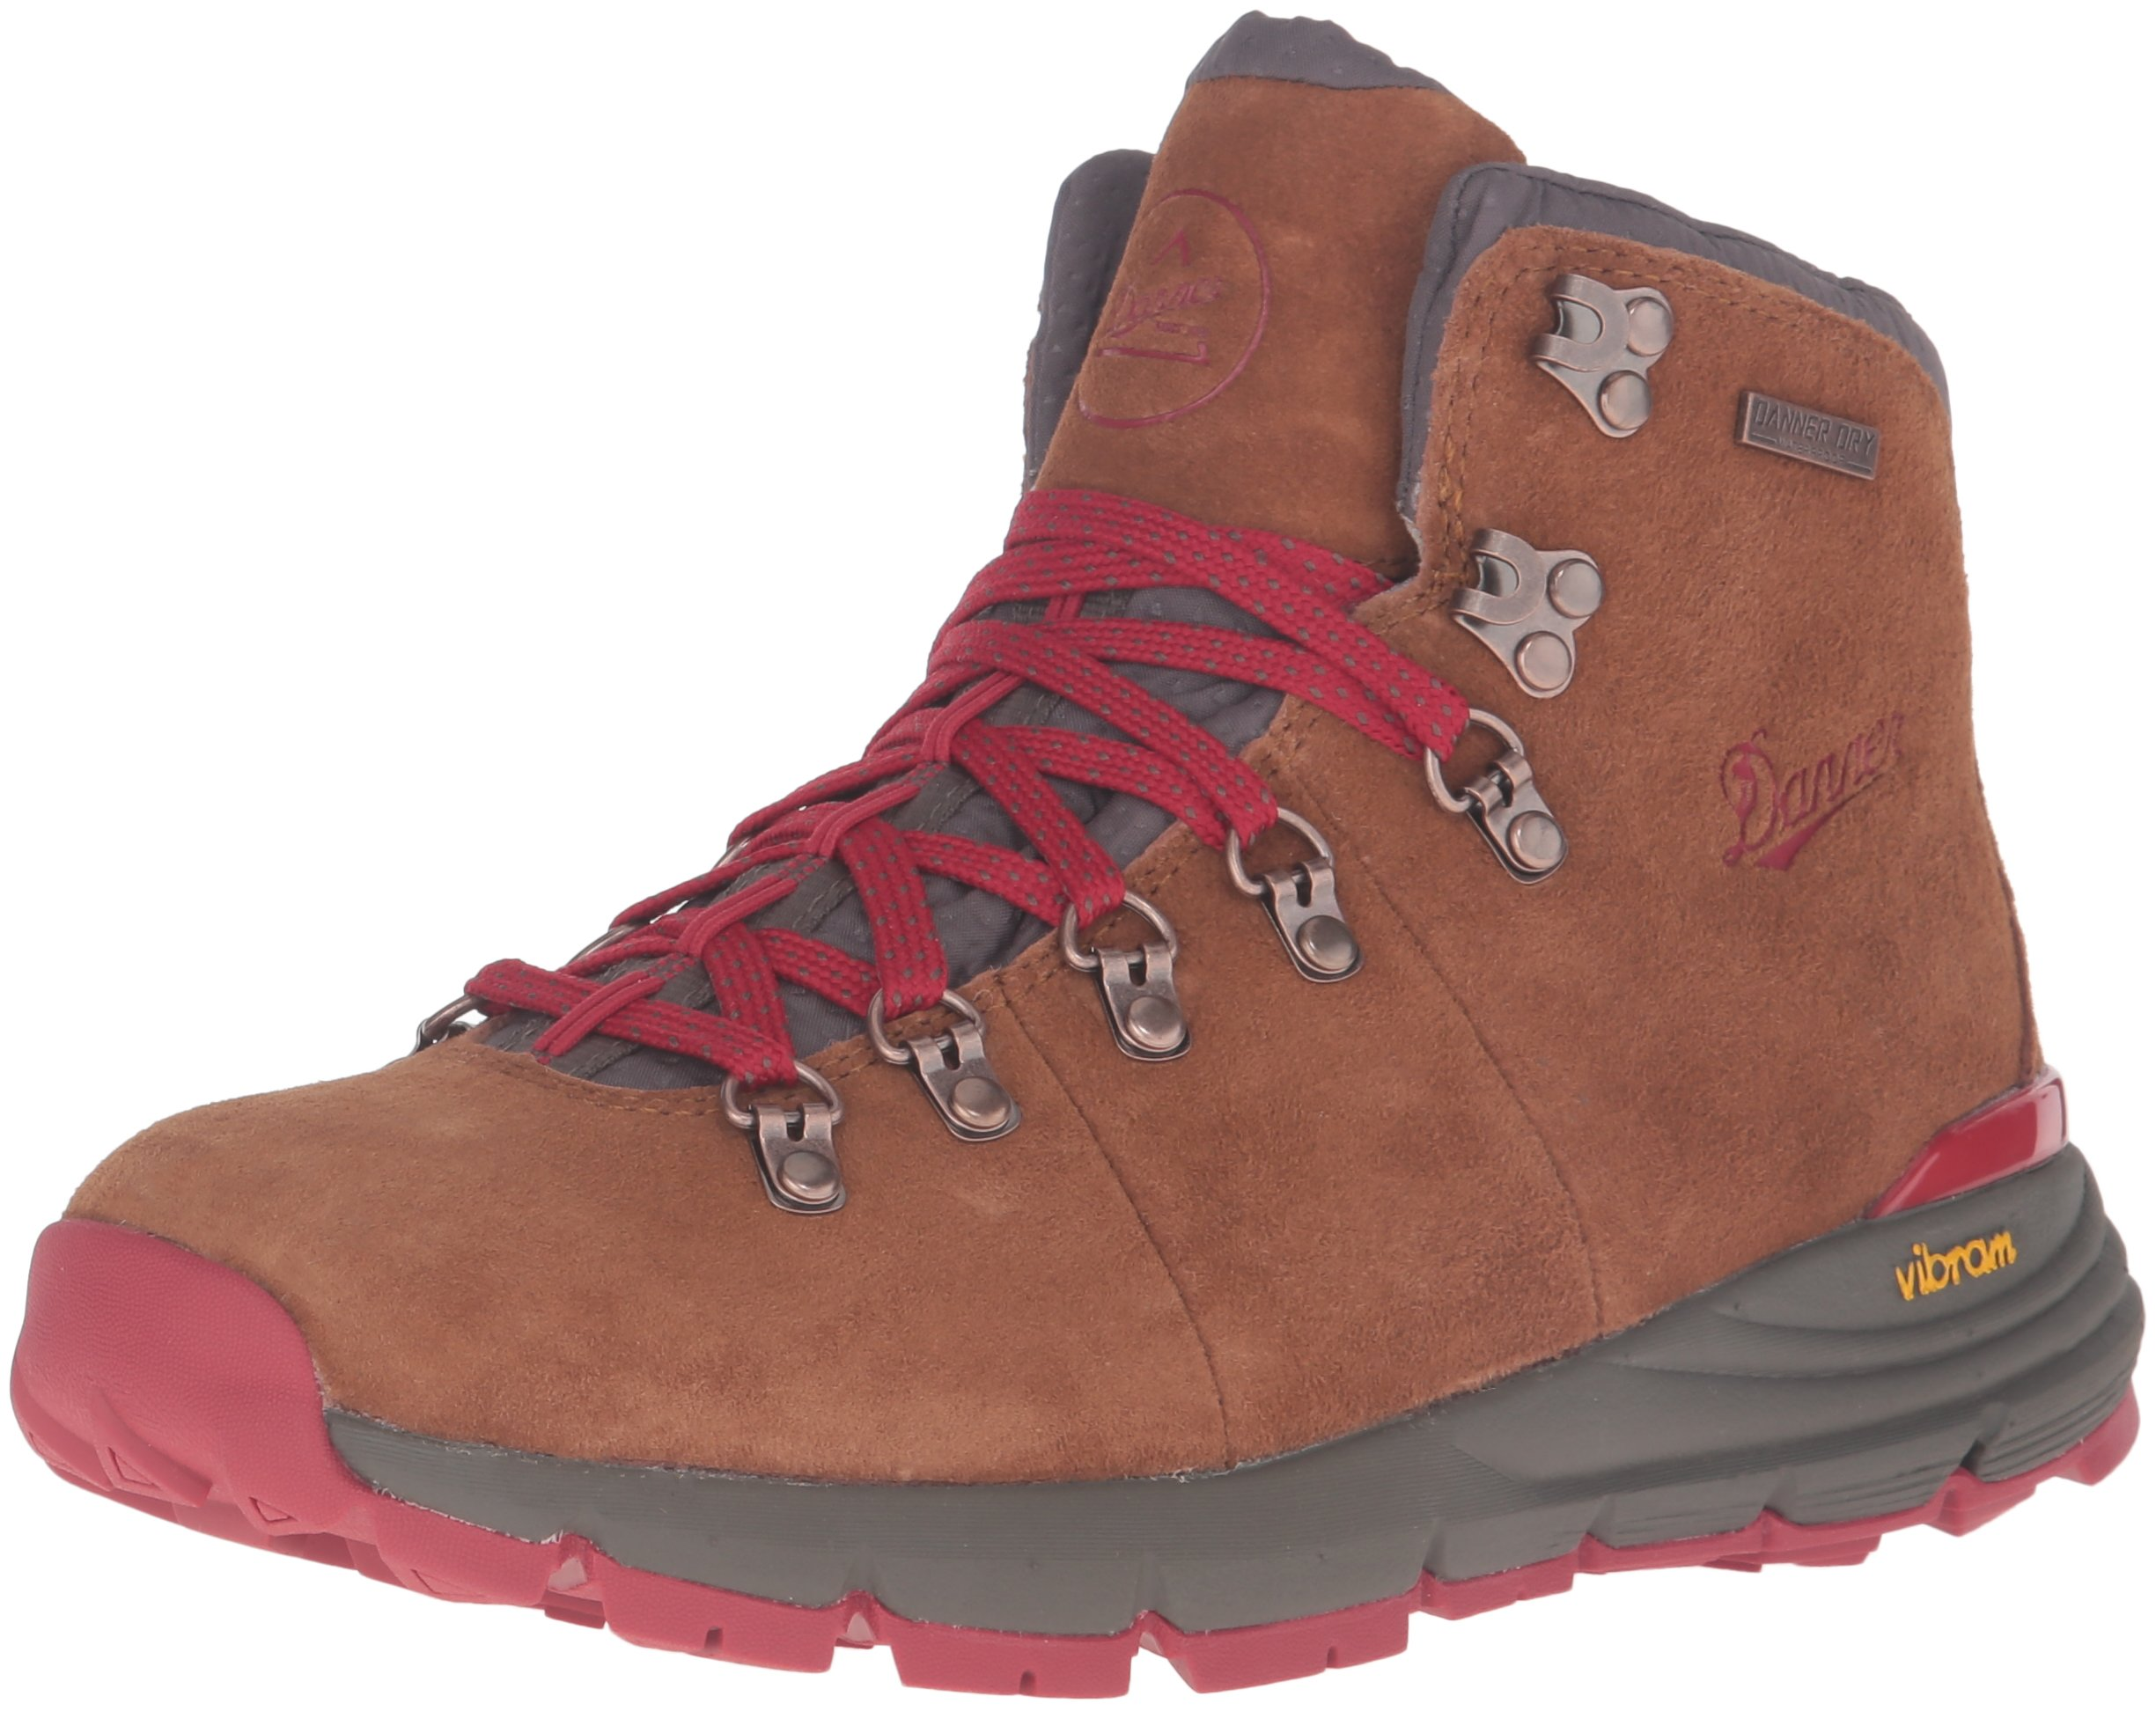 Danner Women's Mountain 600 4.5'' Hiking Boot, Brown/Red, 8.5 M US by Danner